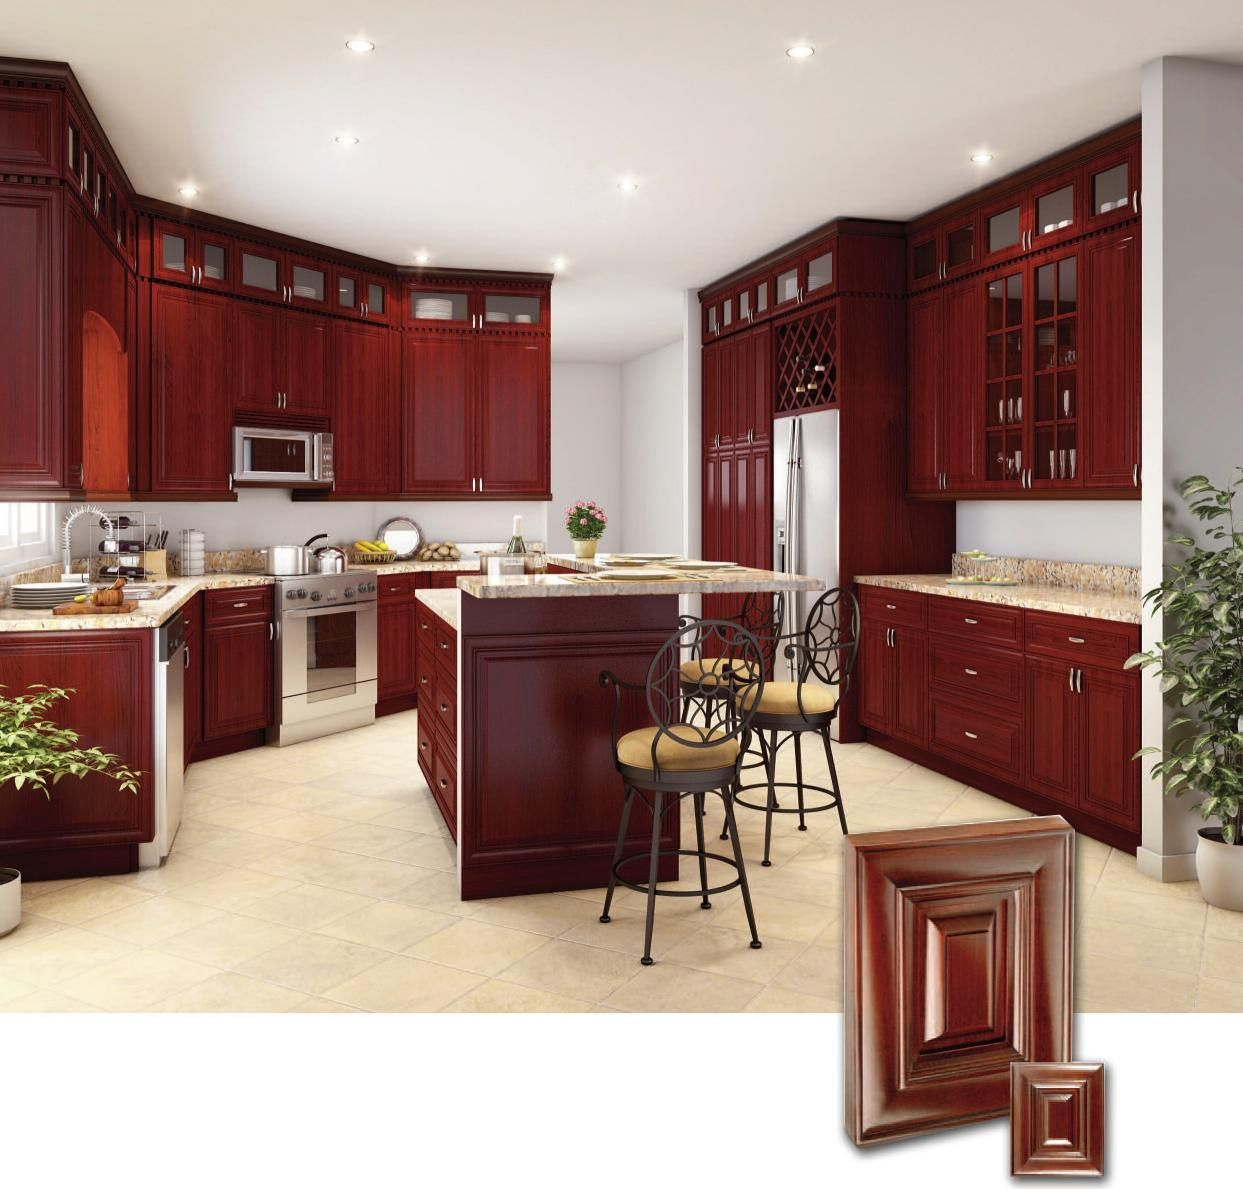 Cherry Kitchen Cabinet Doors: Dark Cherry Wood Kitchen Cabinets